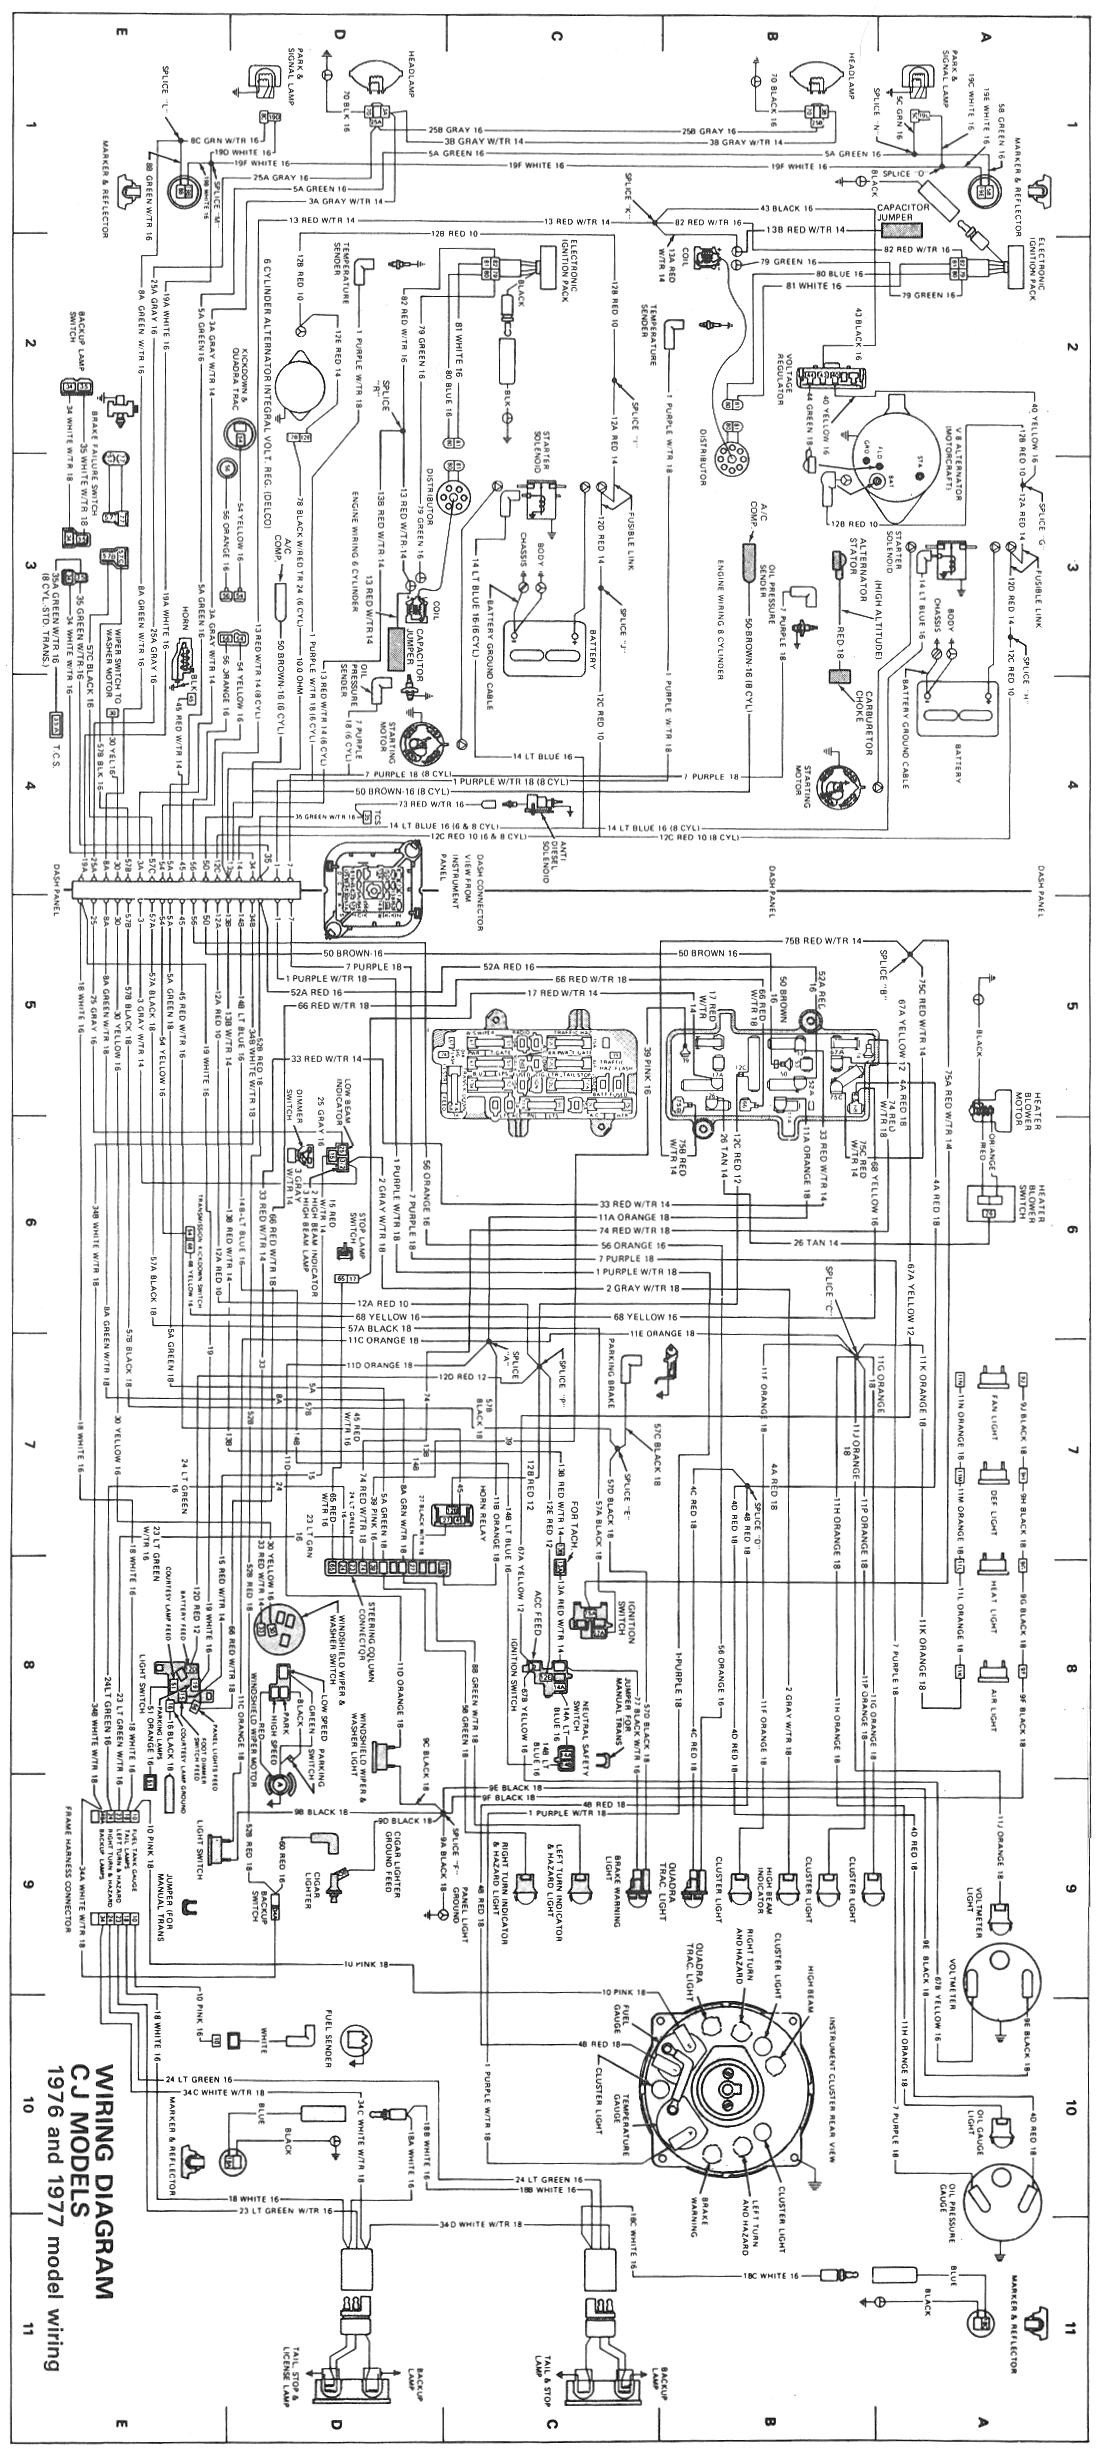 1982 jeep cj7 fuse box wiring diagram for light switch u2022 rh prestonfarmmotors co